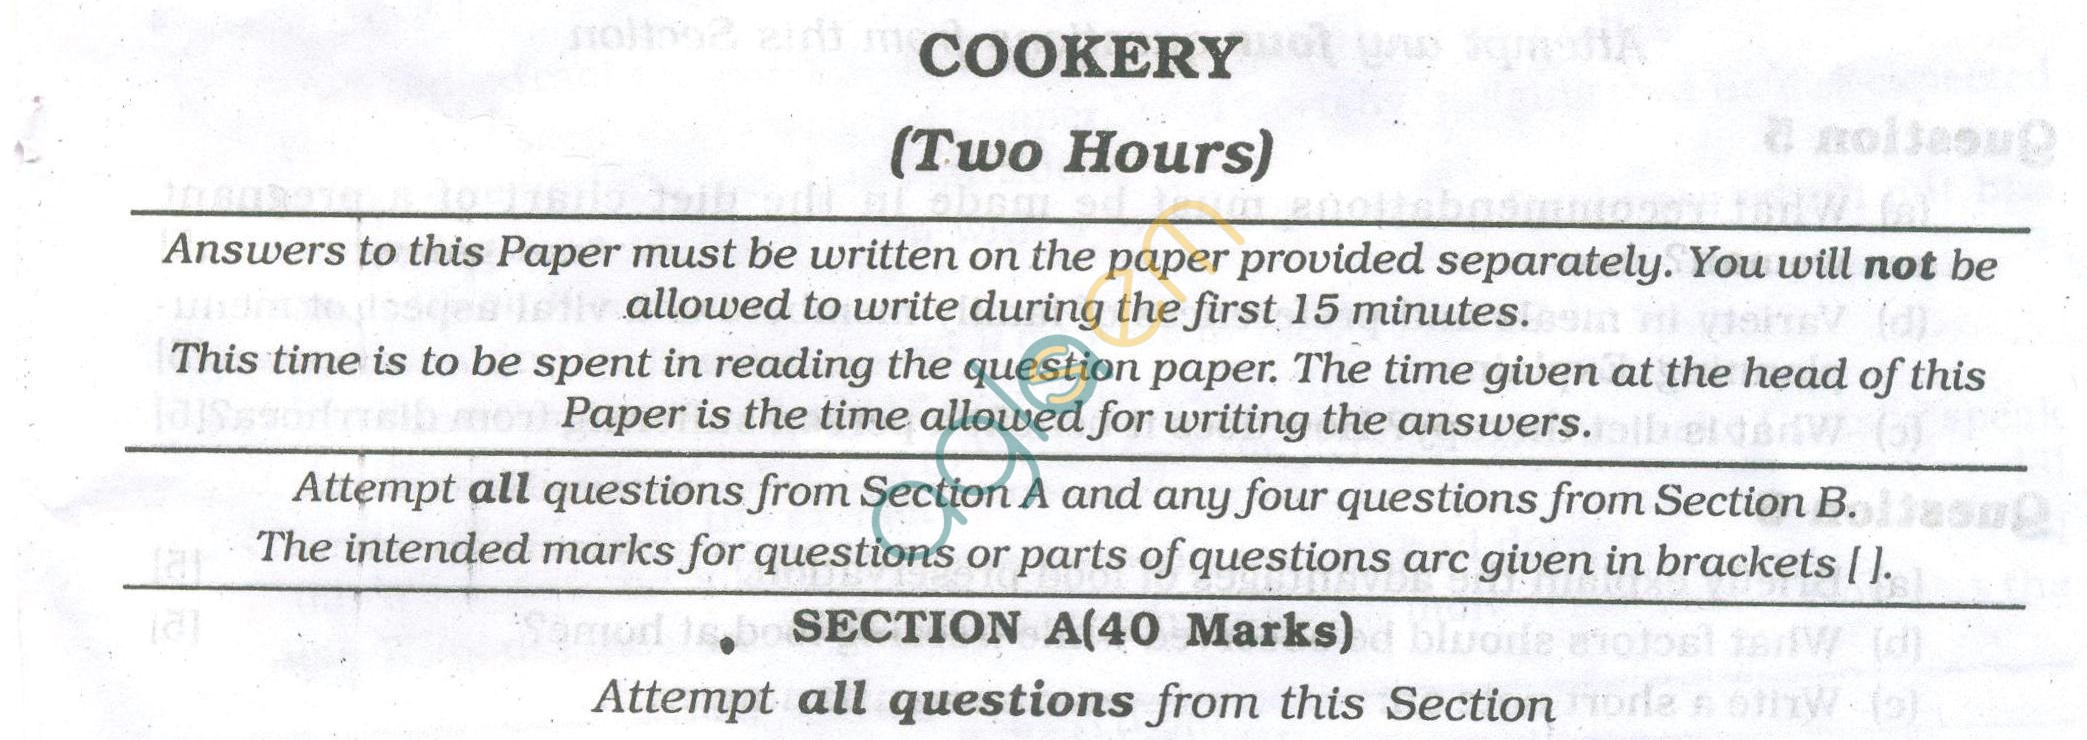 ICSE Question Papers 2013 for Class 10 - Cookery